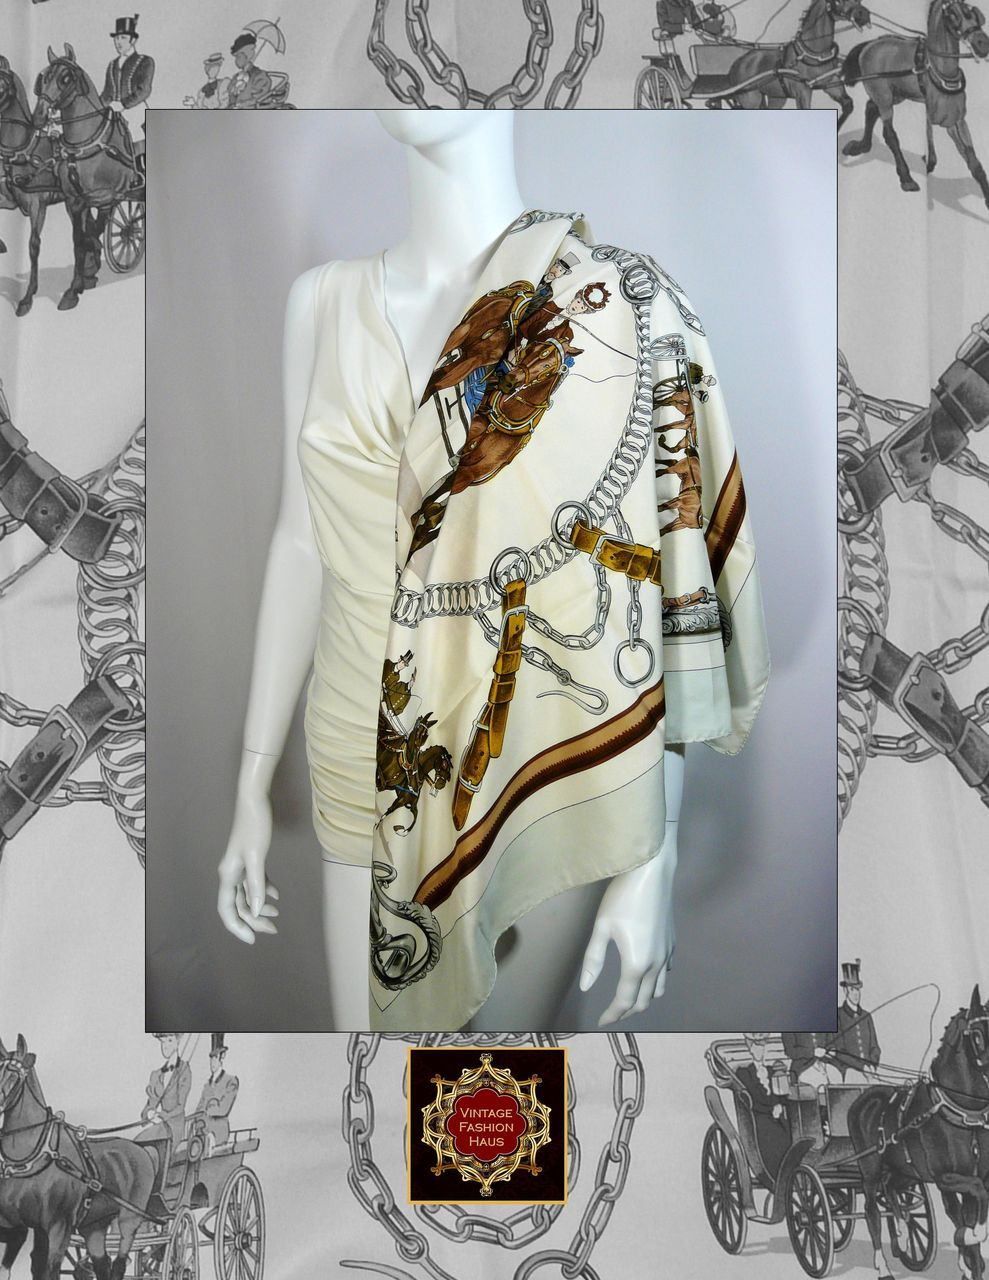 Authentic Vintage Hermes Silk Scarf  Carre EQUIPAGE from  Authentic Vintage Hermes Scarves